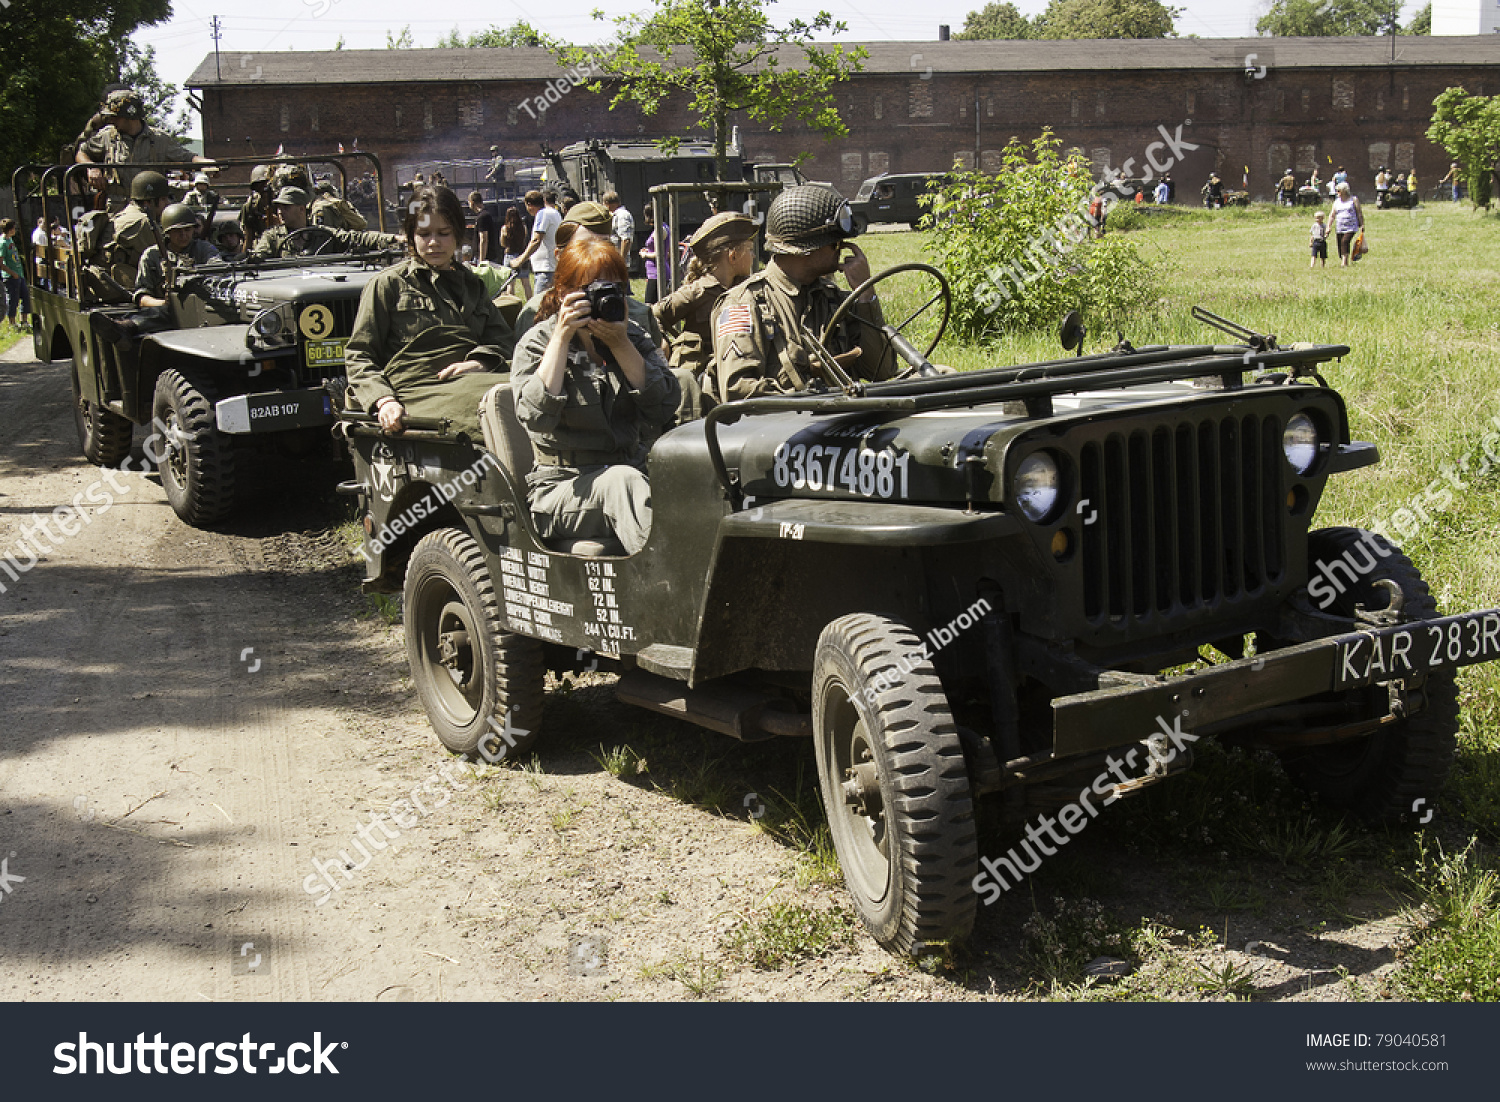 RADZIONKOW, POLAND - JUNE 04: Old military vehicles at demonstration race  during